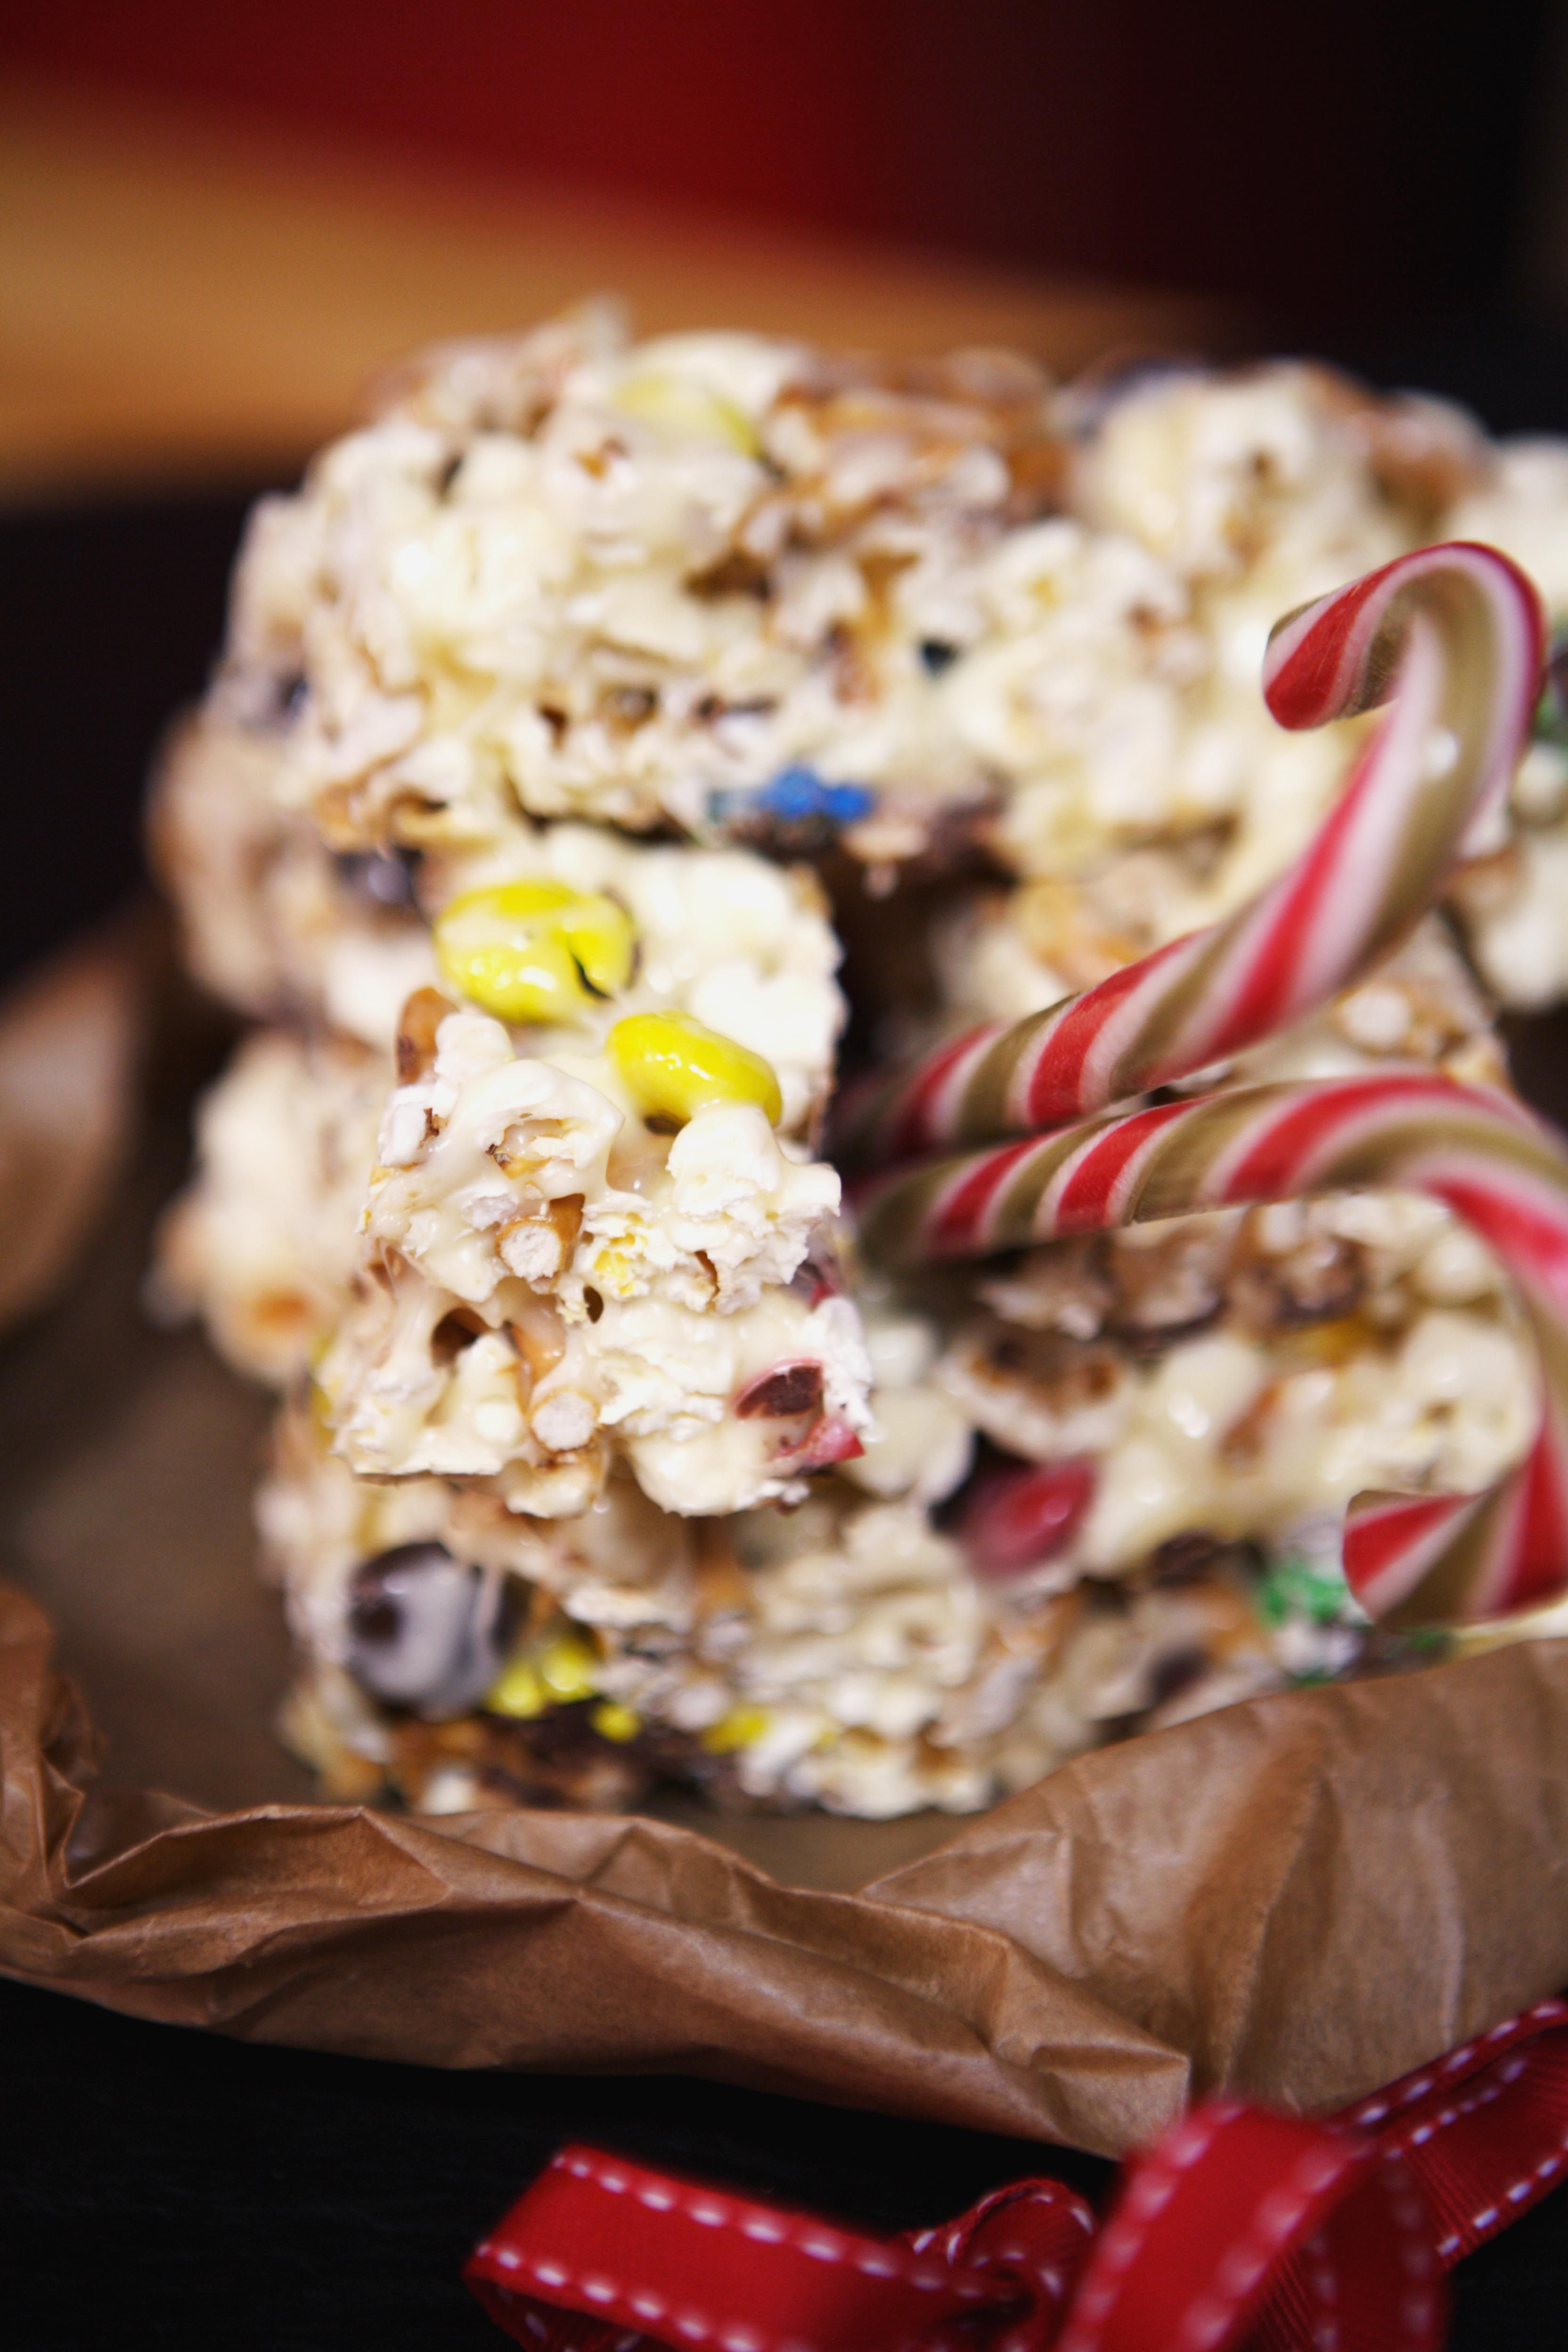 Marshmallow Popcorn bars! Perhaps the most ridiculous cinema treat ever!